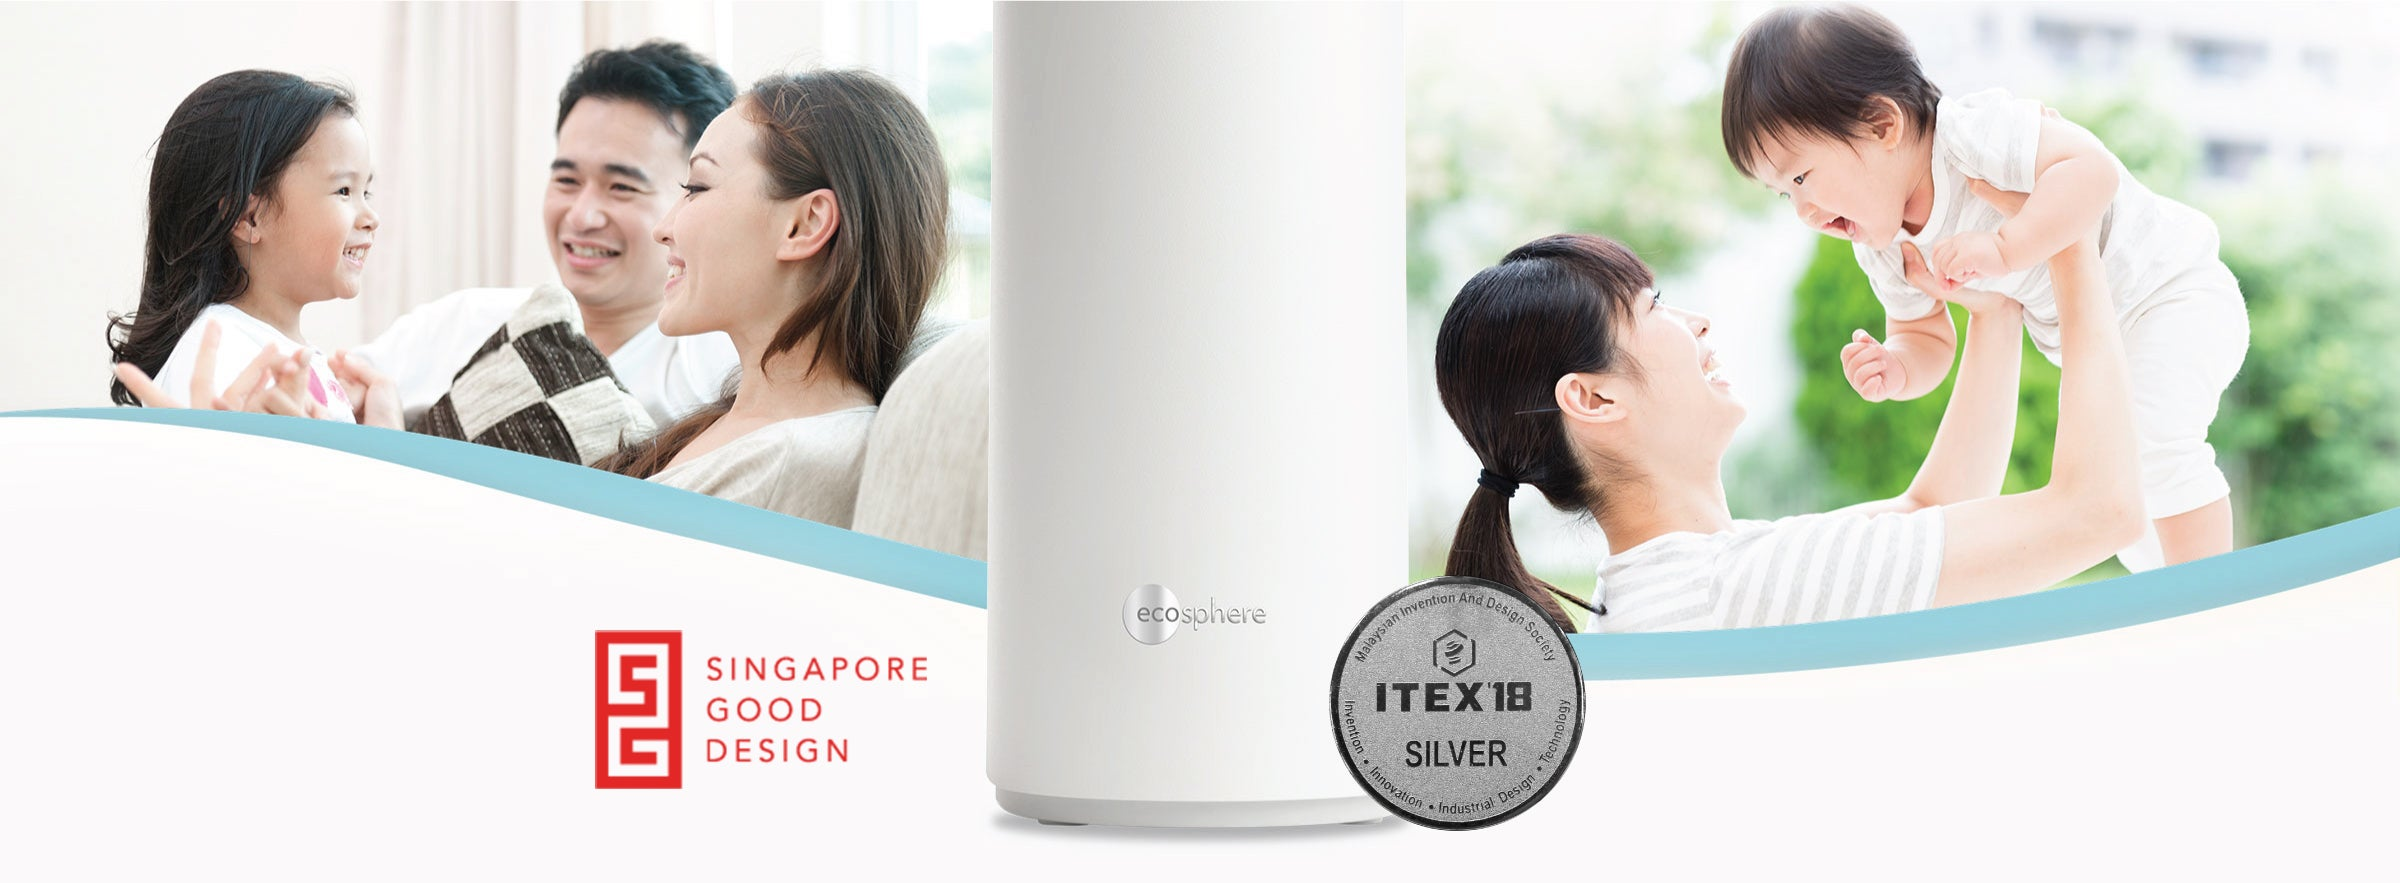 Photos of happy families in their homes with EcoSphere Water Purifier product photo in the center